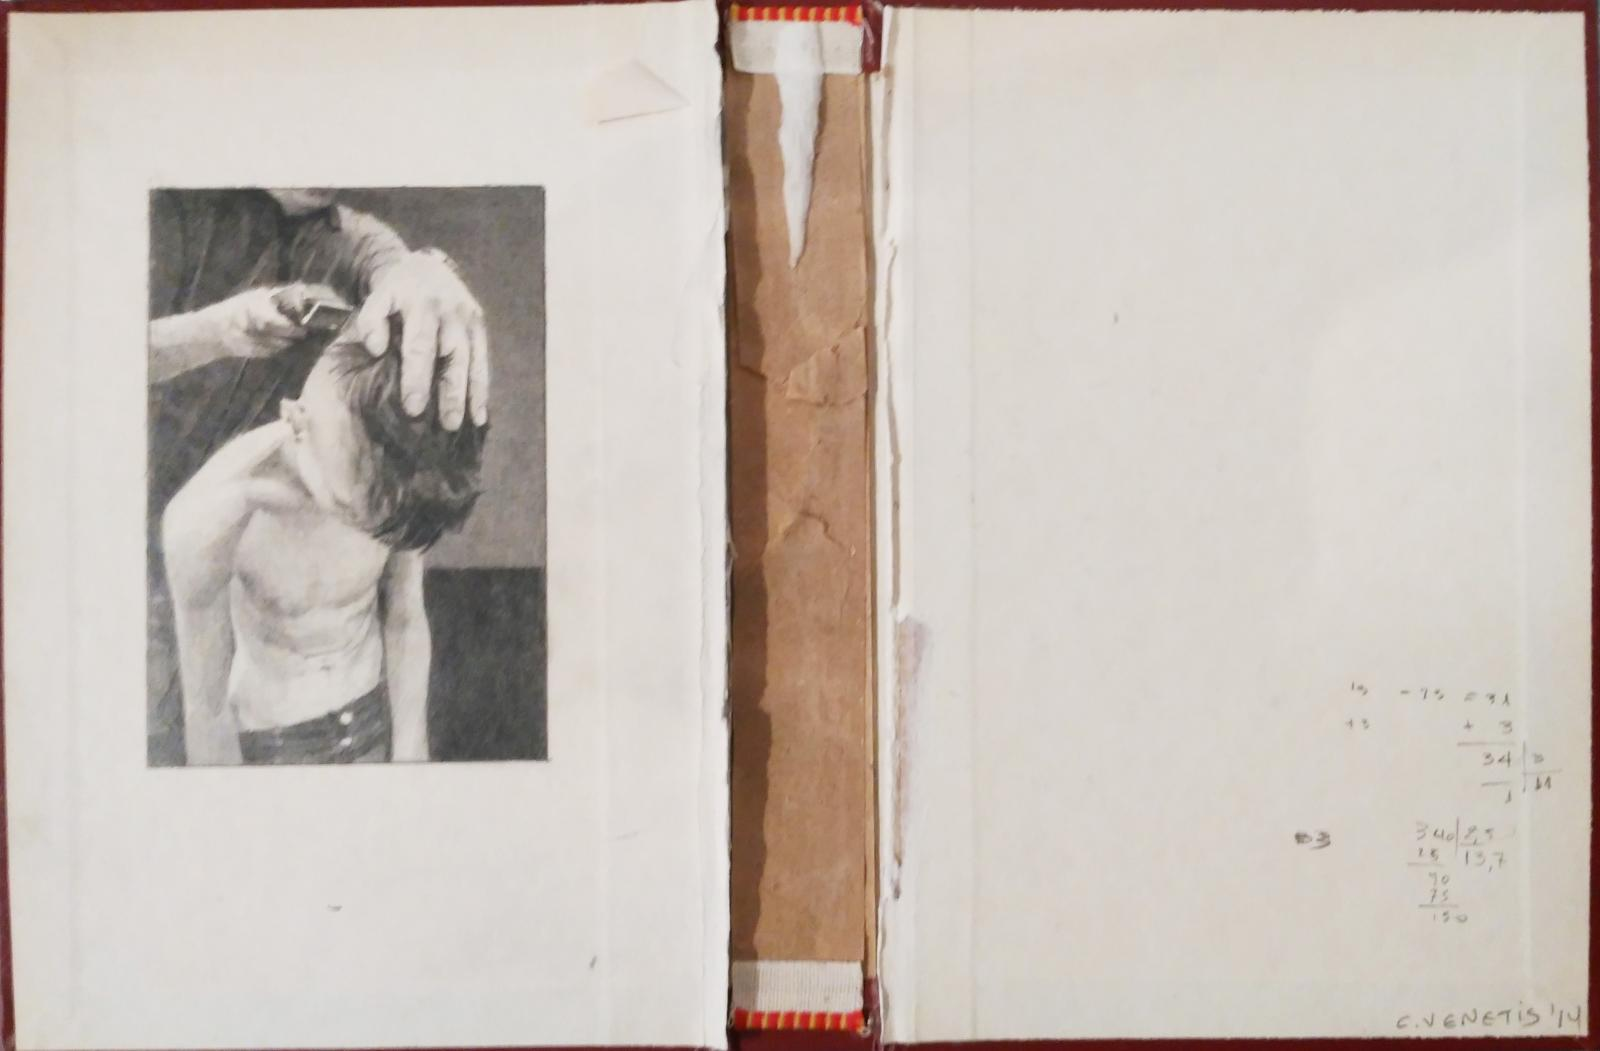 Christos Venetis, Anemic Archives Series, pencil on used book covers, 21,5 x 30 cm, 2013-1